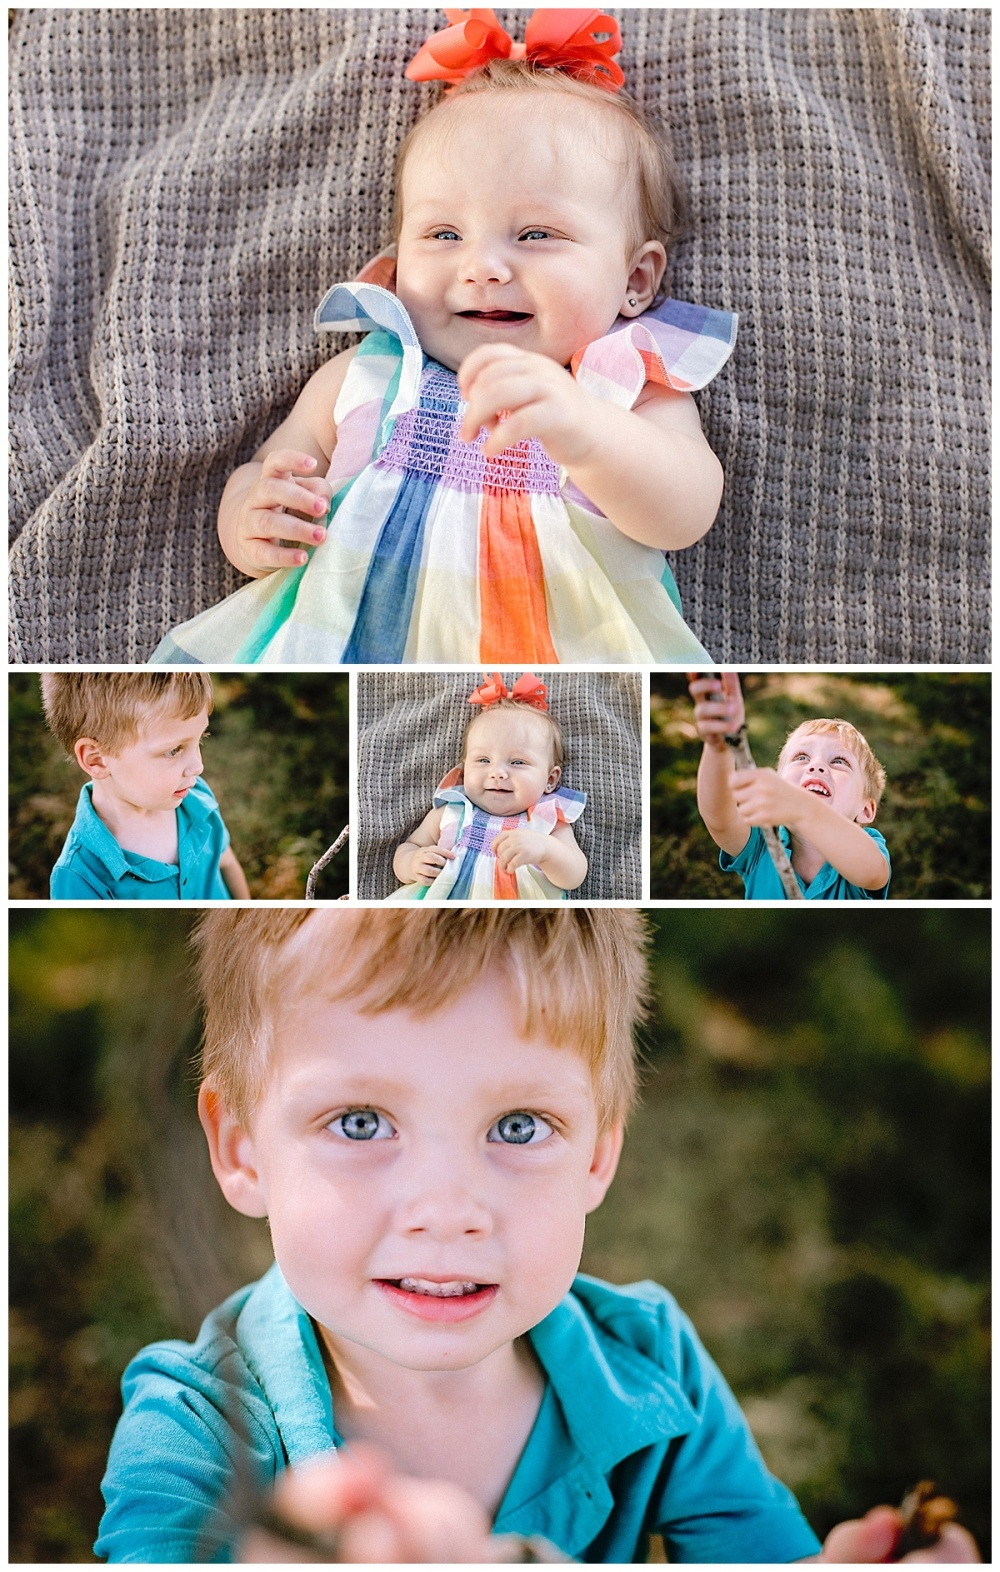 Carly-Barton-Photography-Family-Session-LaVernia-Texas-Saylor-6mos_0022.jpg